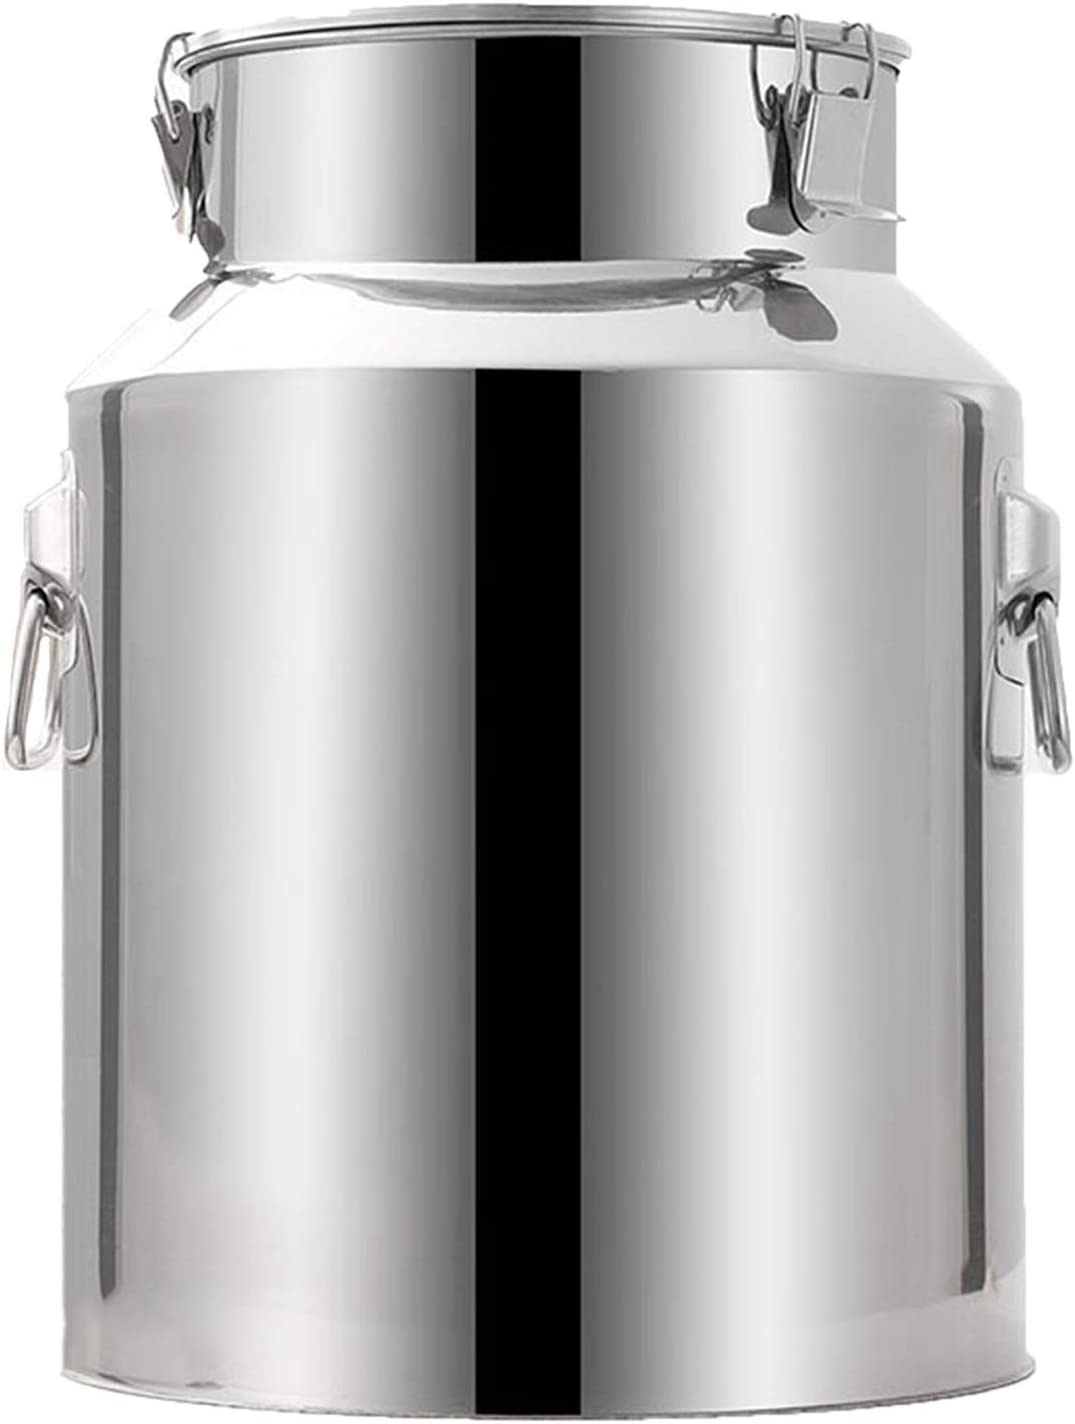 Airtight Bucket Food Canisters Milk Can Steel Container Seasonal Wrap Be super welcome Introduction Stai Jug